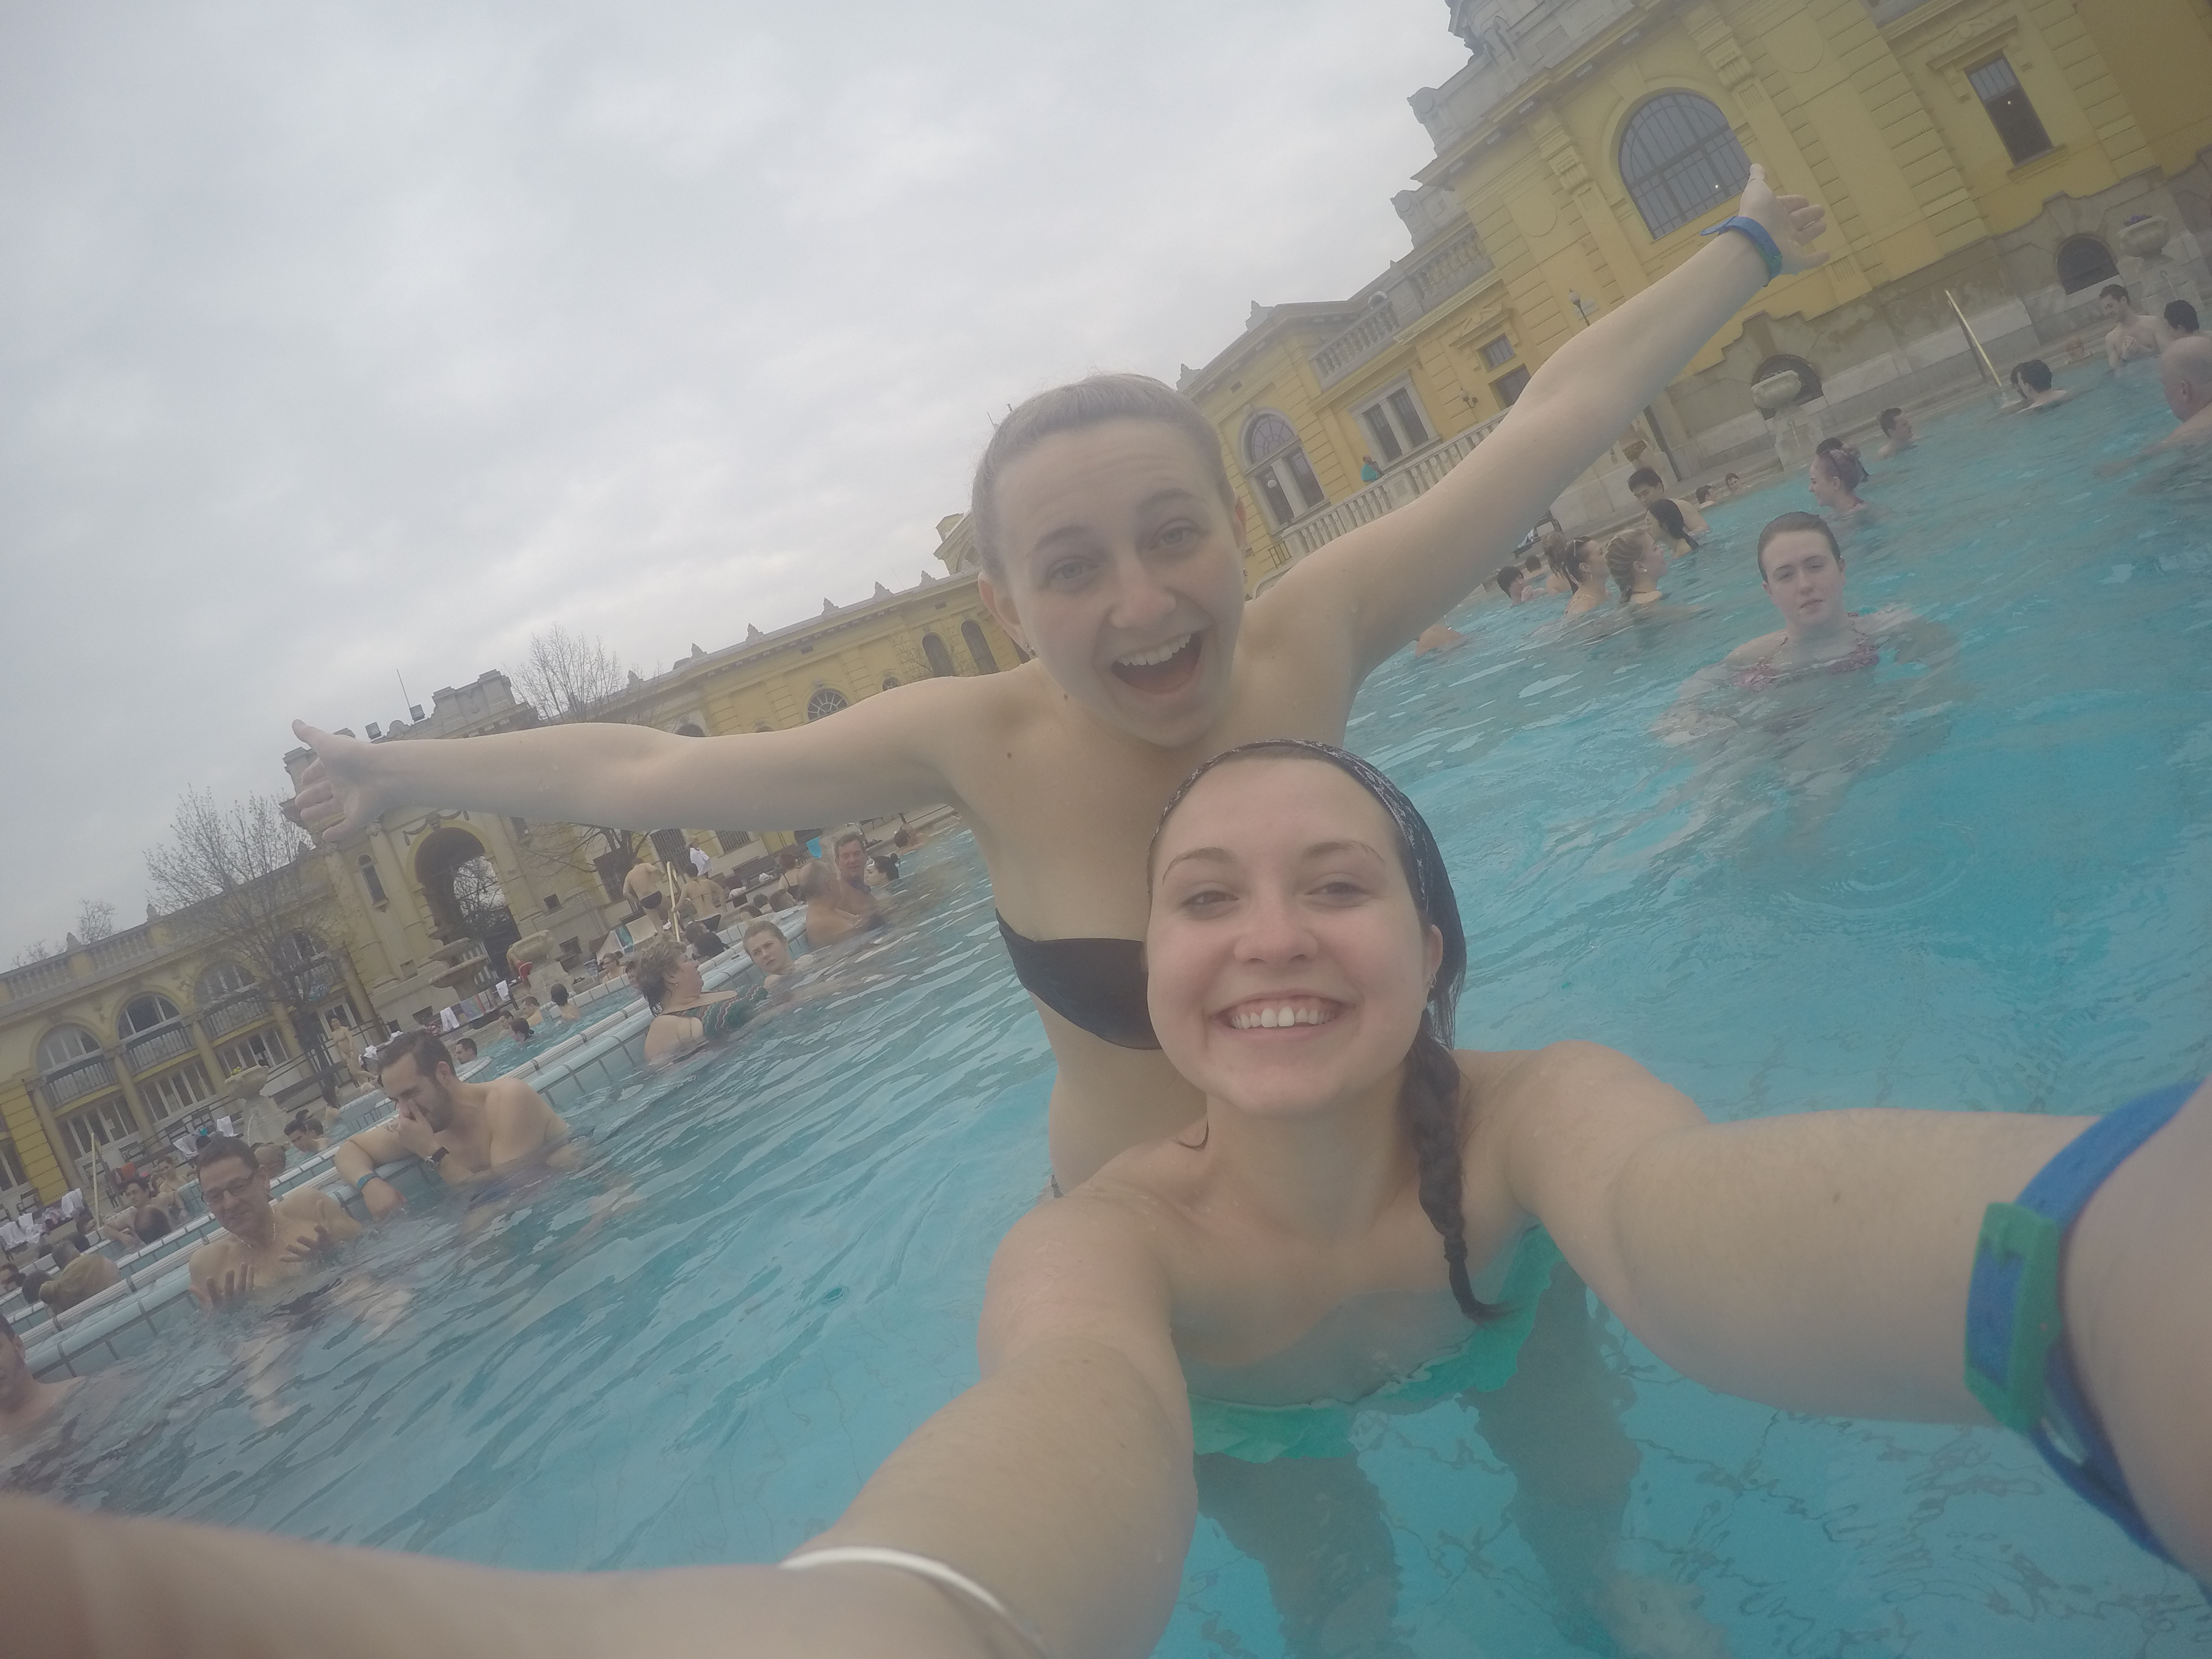 We love the water proof GoPro and piggy backs